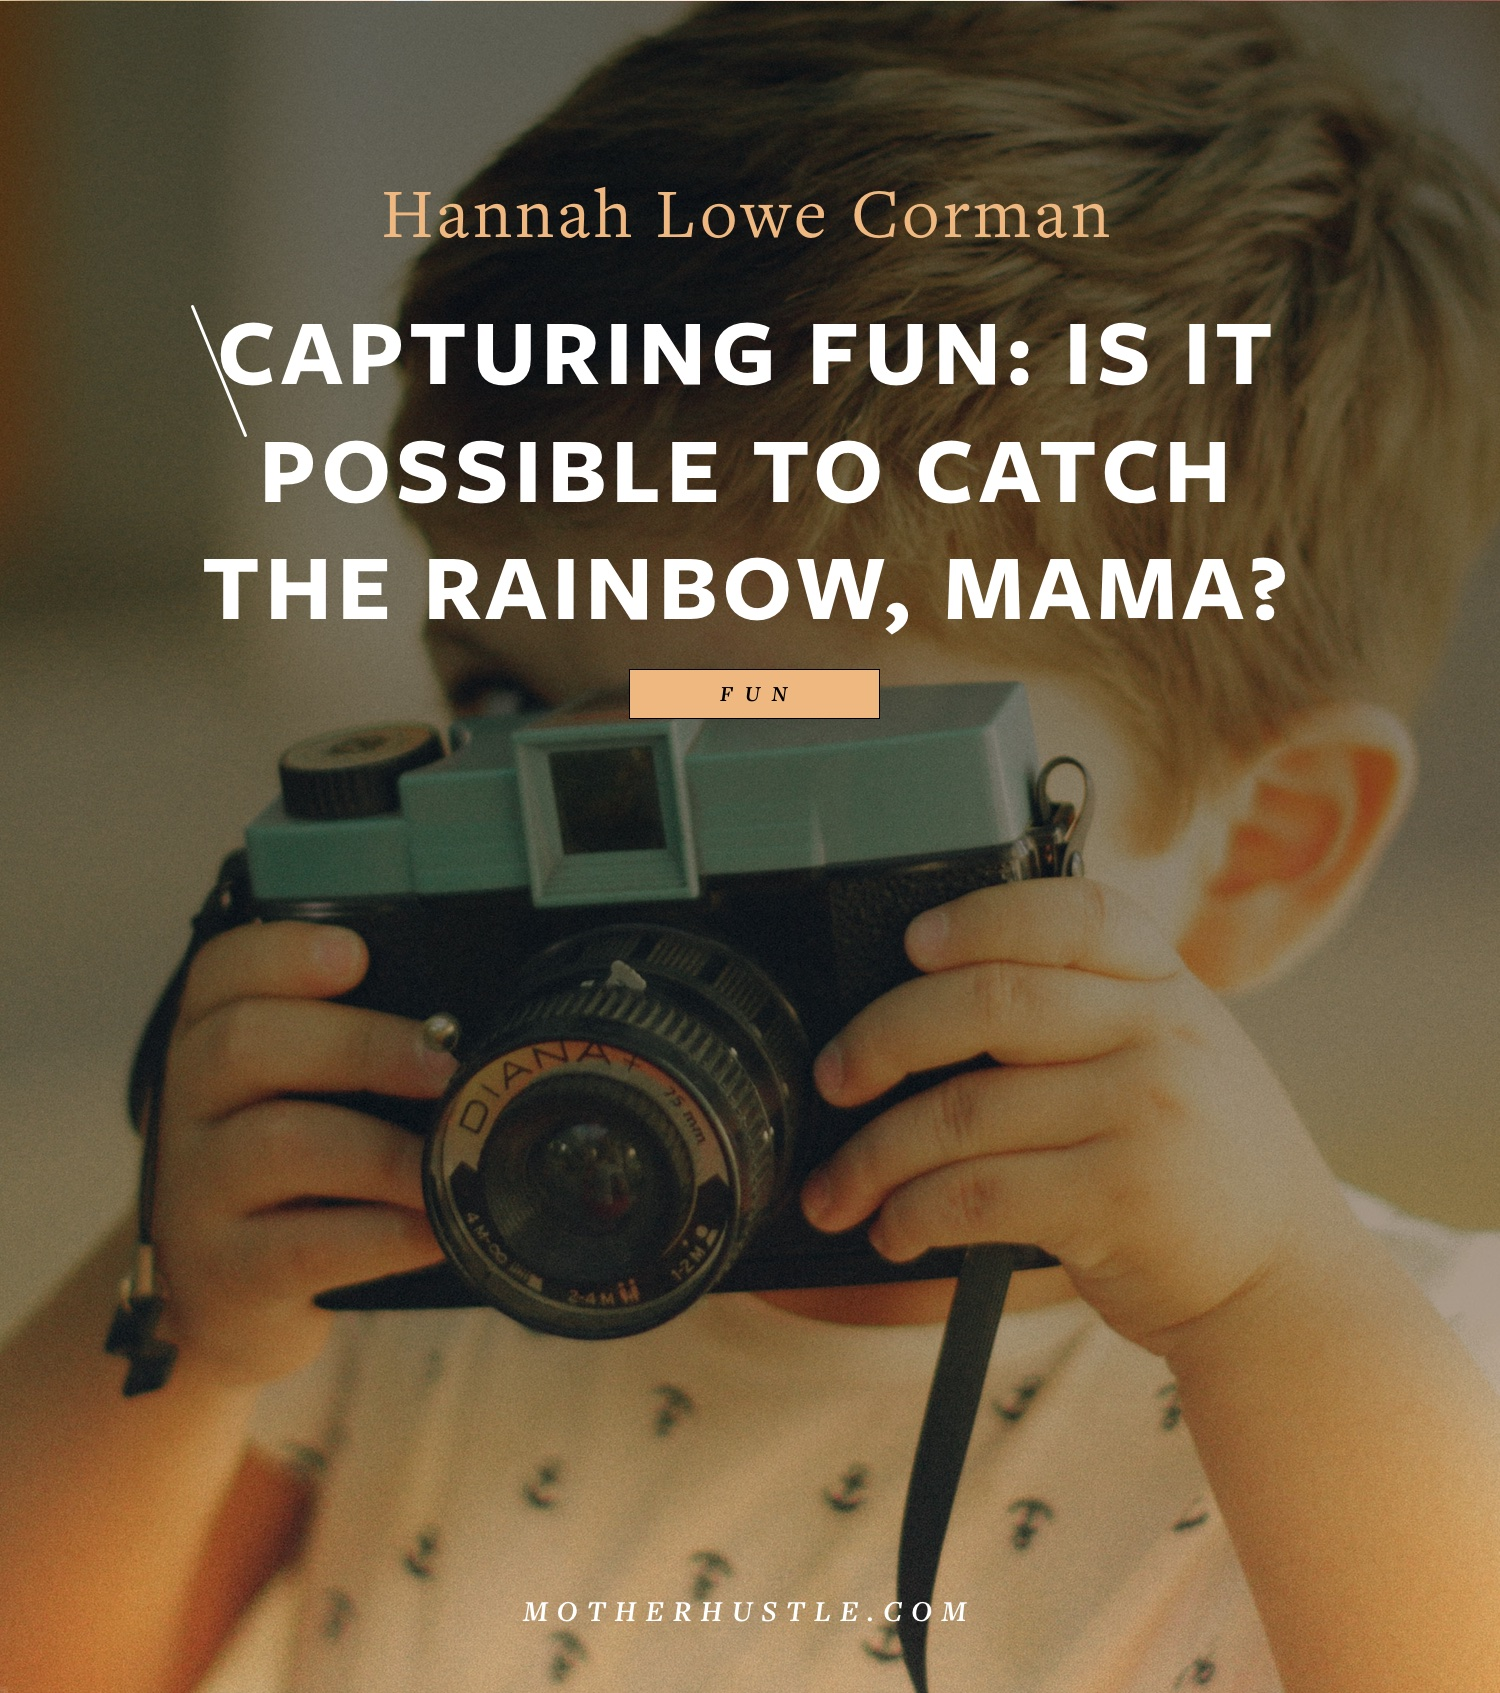 Capturing Fun- Is It Possible to Catch the Rainbow, Mama? - By Hannah Lowe Corman for MotherHustle